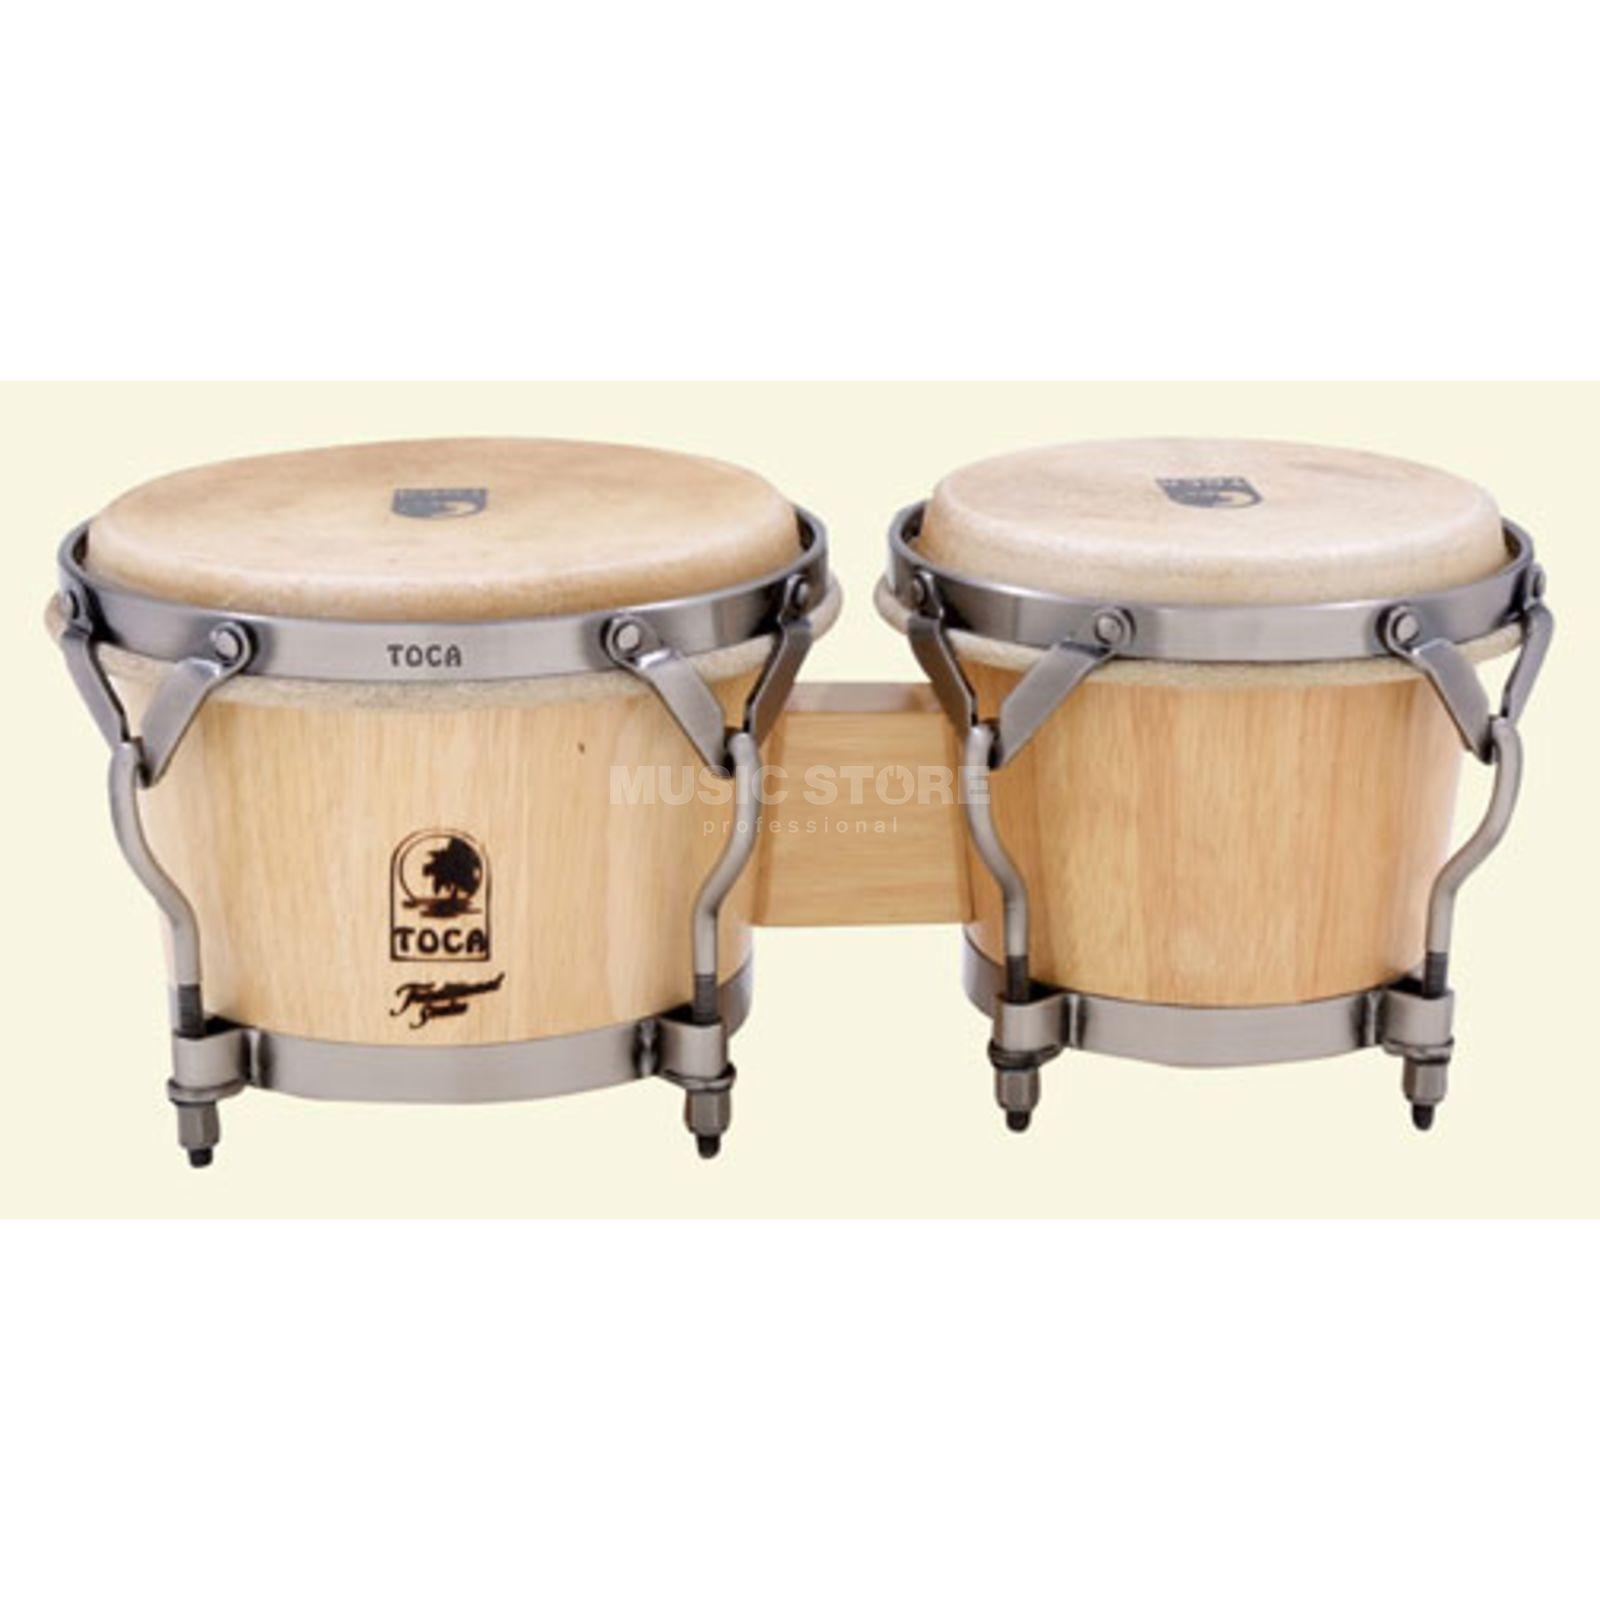 Toca Percussion Traditional Bongos Natural, Overstock Produktbild